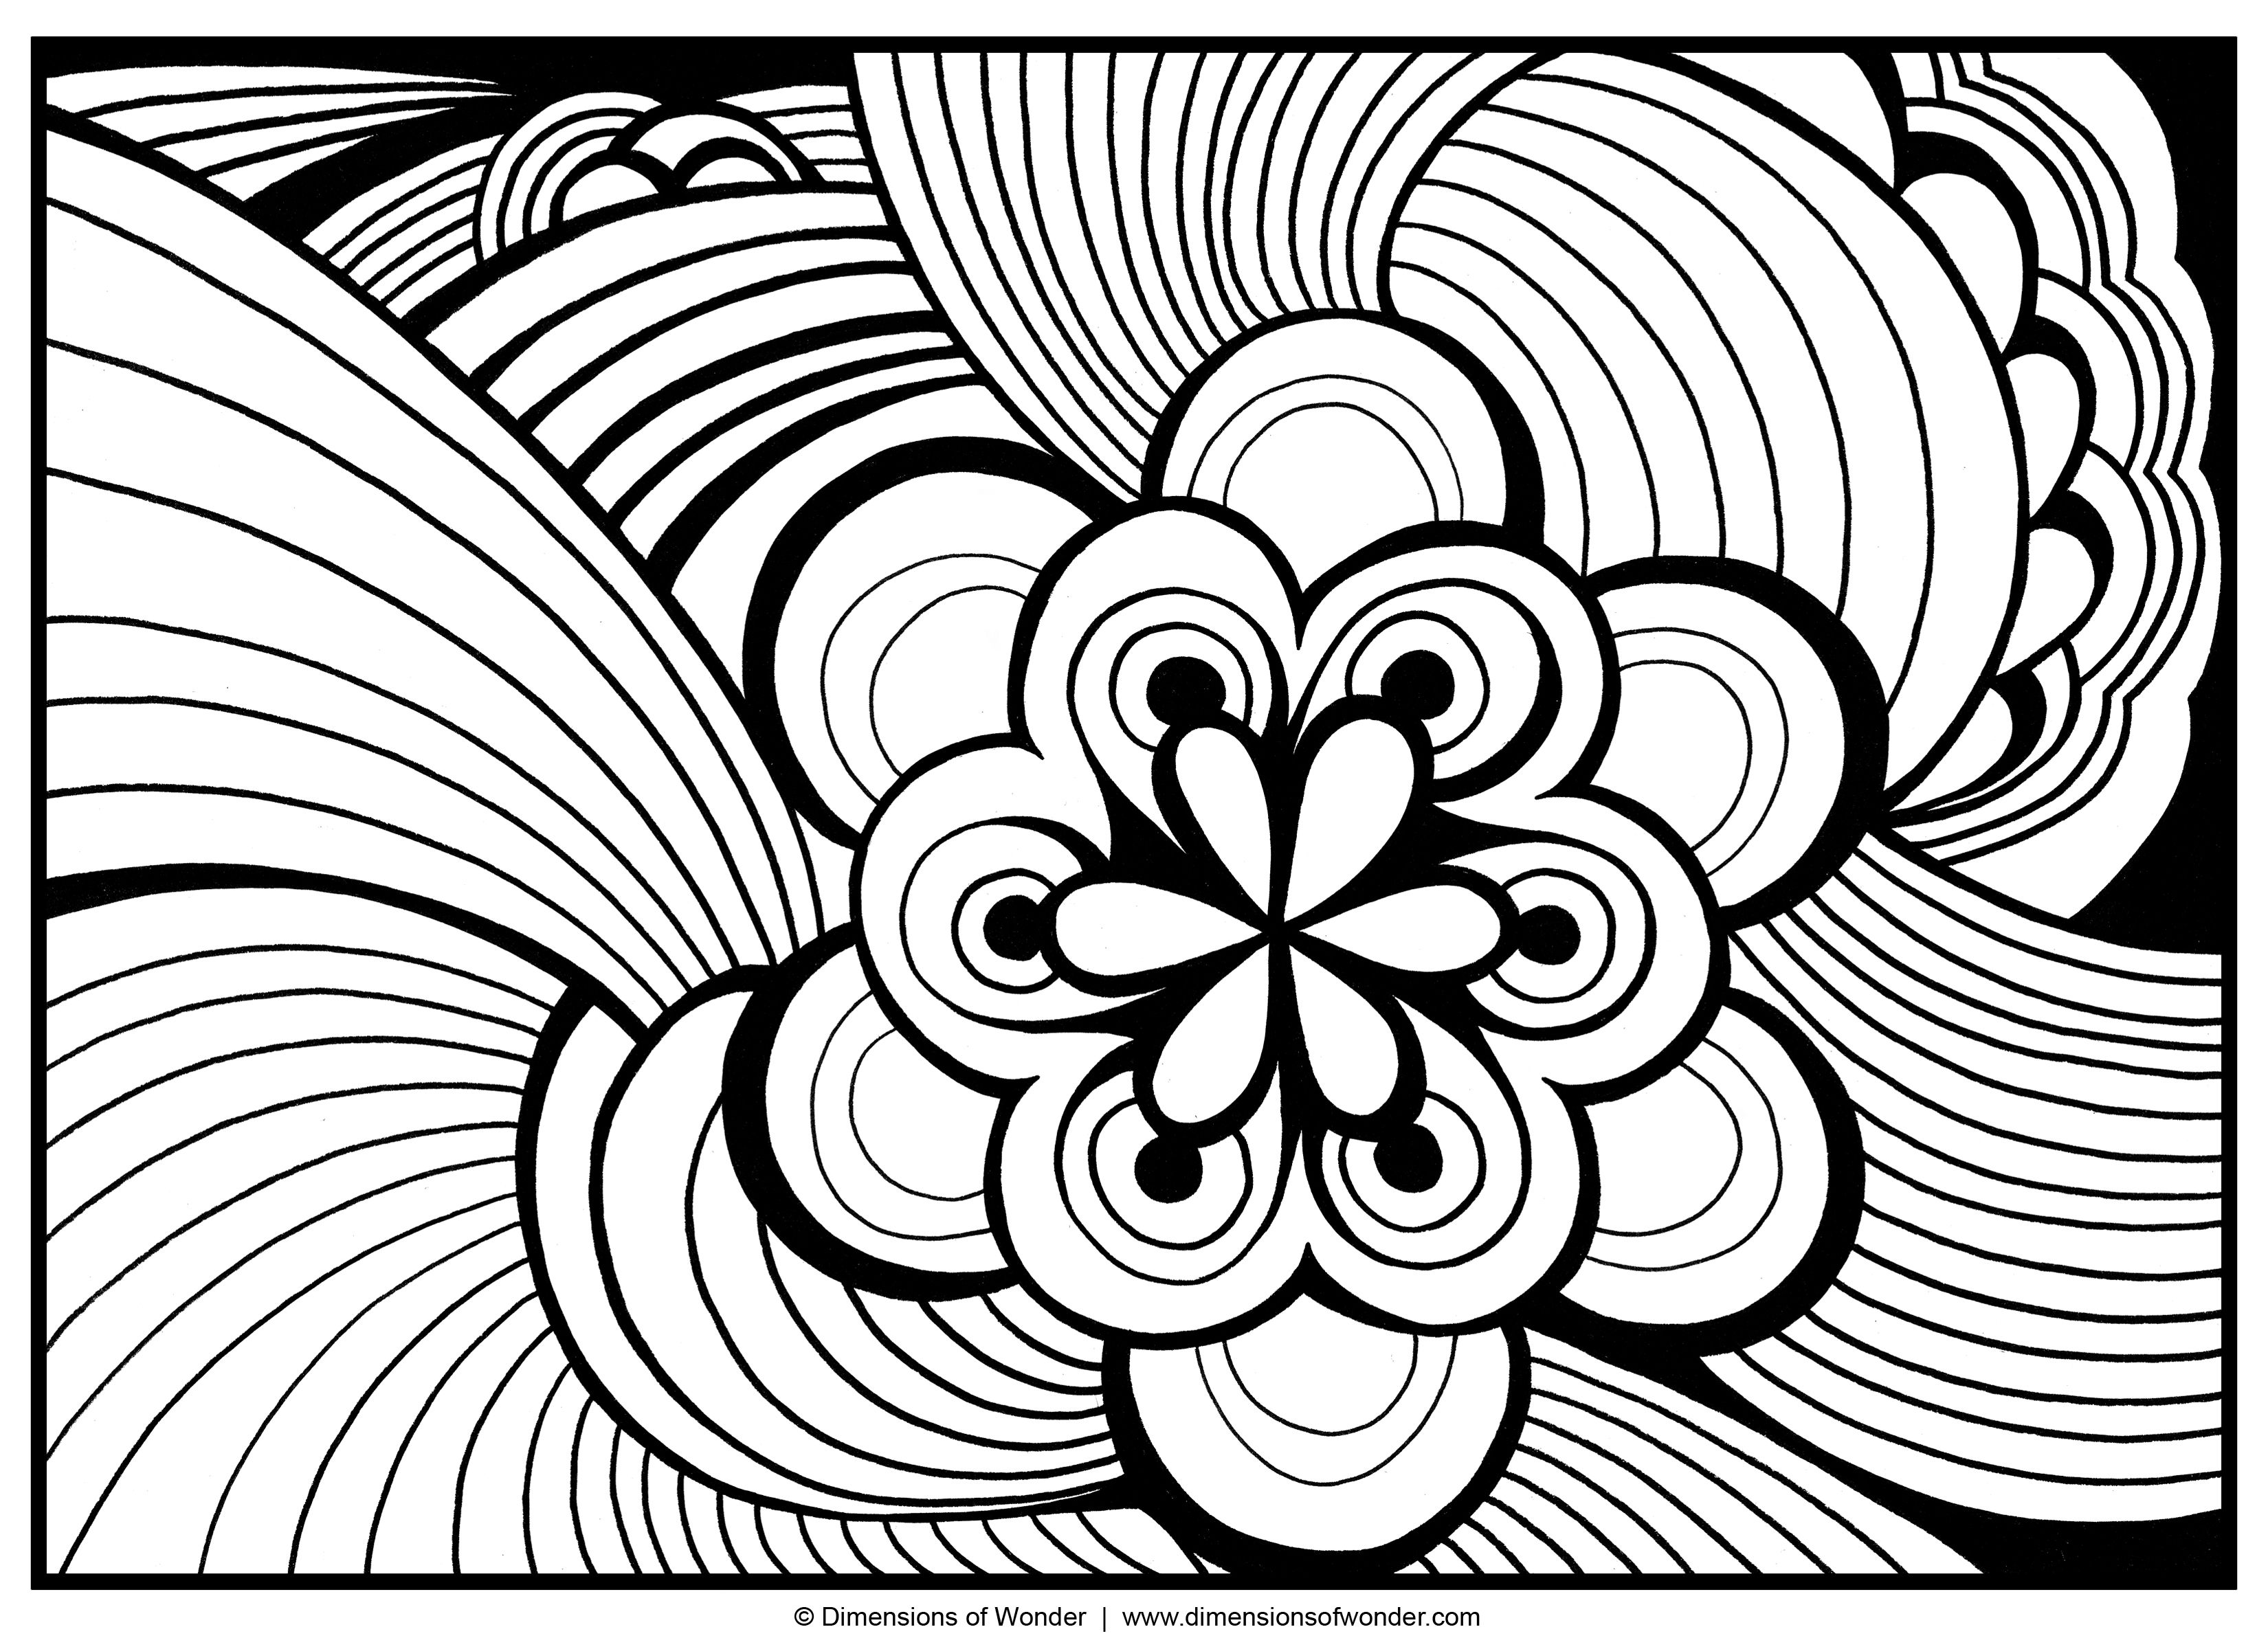 Uncategorized Free Coloring Pages Designs abstract coloring pages free large images adult and childrens images